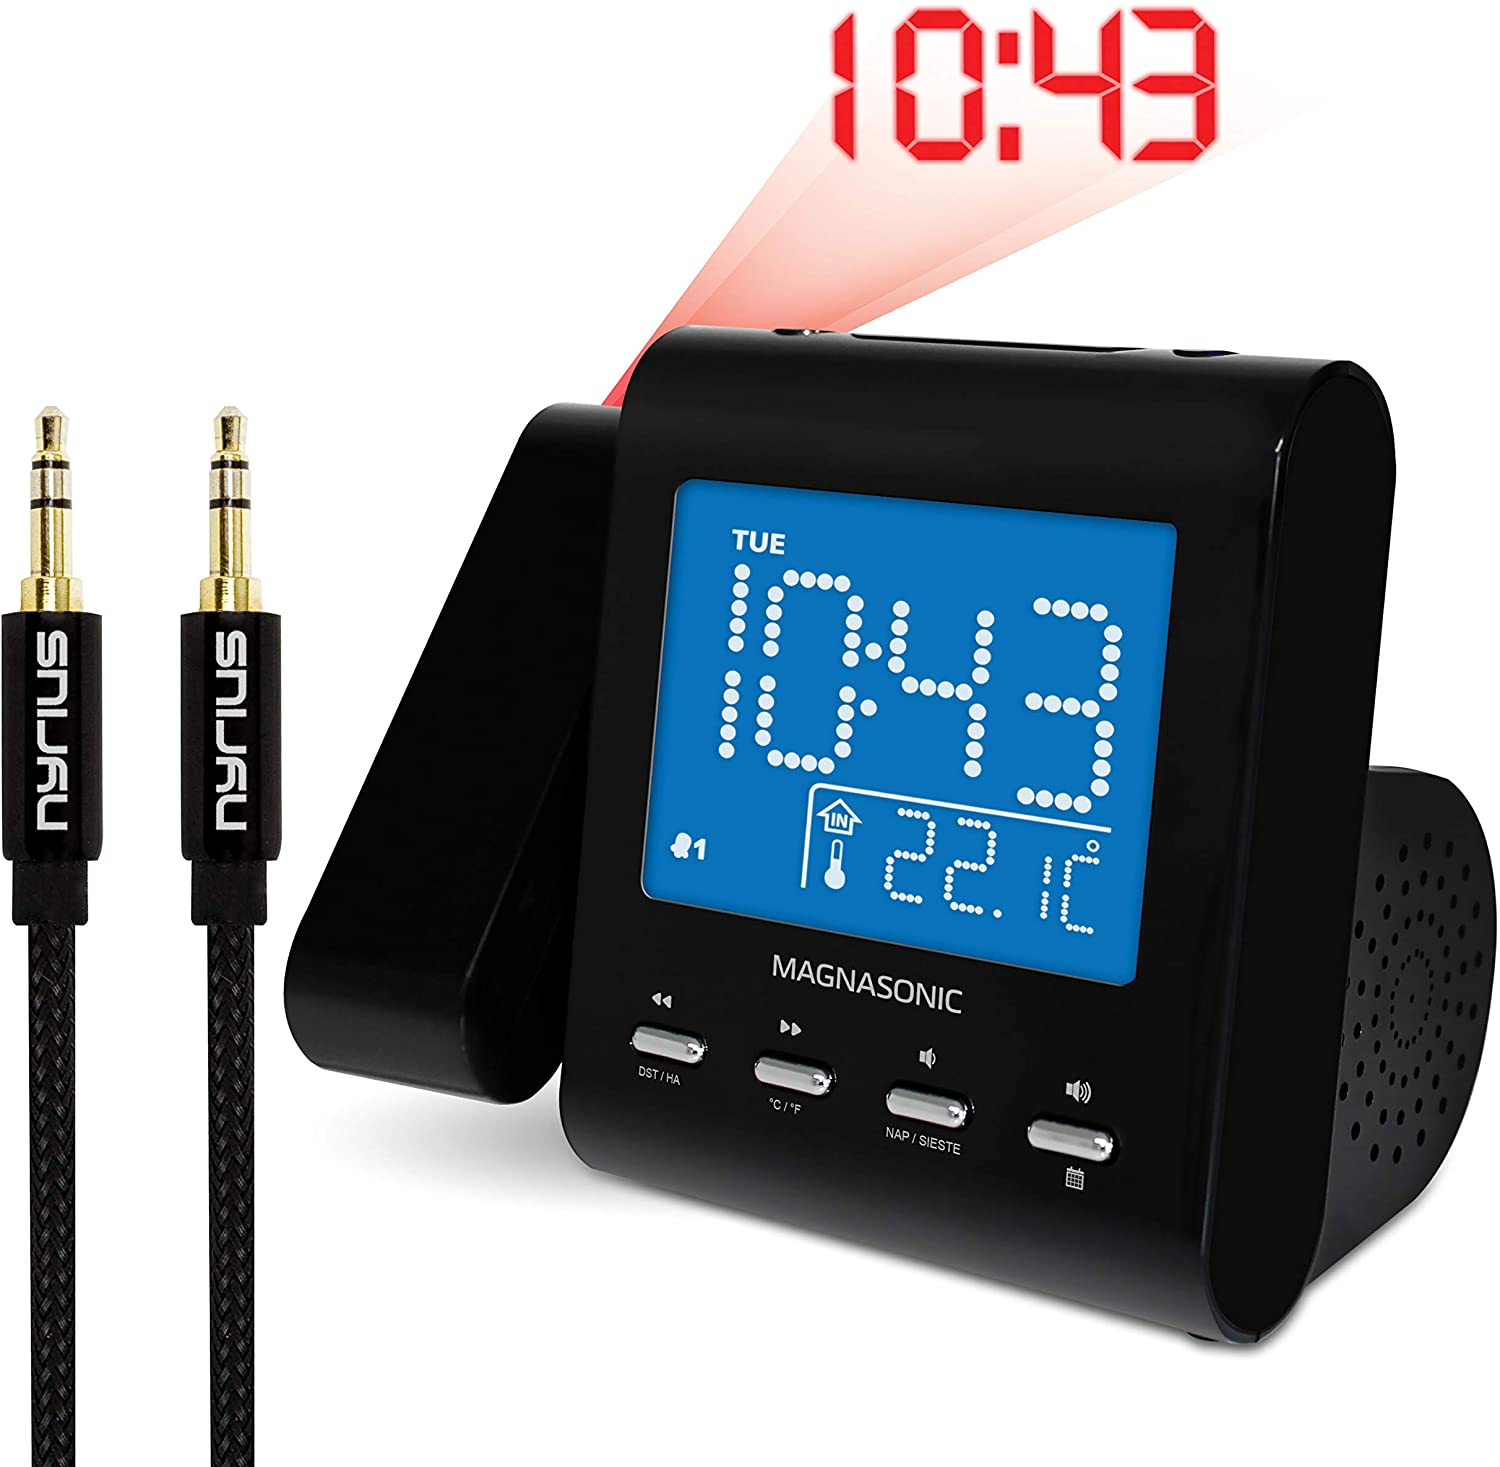 Magnasonic Projection Alarm Clock with AM/FM Radio, Battery Backup, Auto Time Set, Dual Alarm, Sleep Timer, Indoor Temperature/Day/Date Display & Bonus 3.5mm Aux Stereo Cable